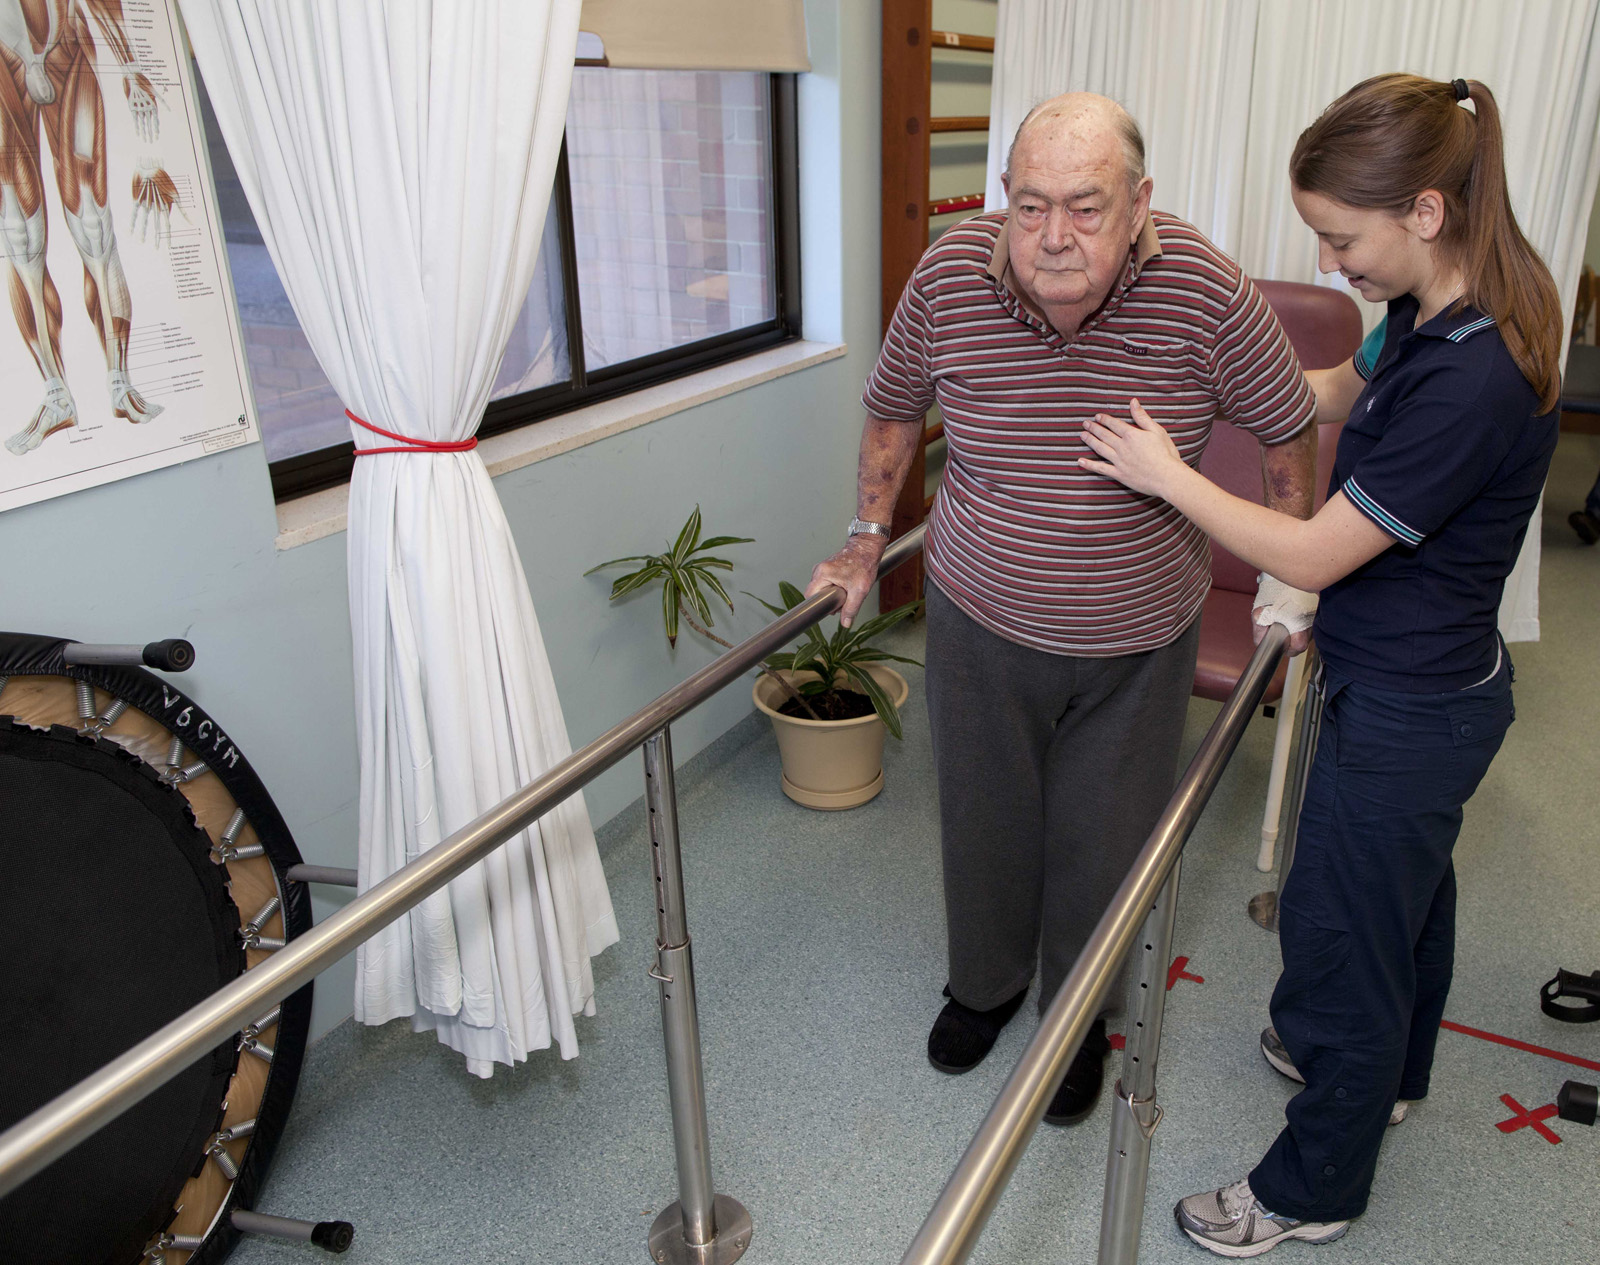 Patient practising walking with the help of a physiotherapist